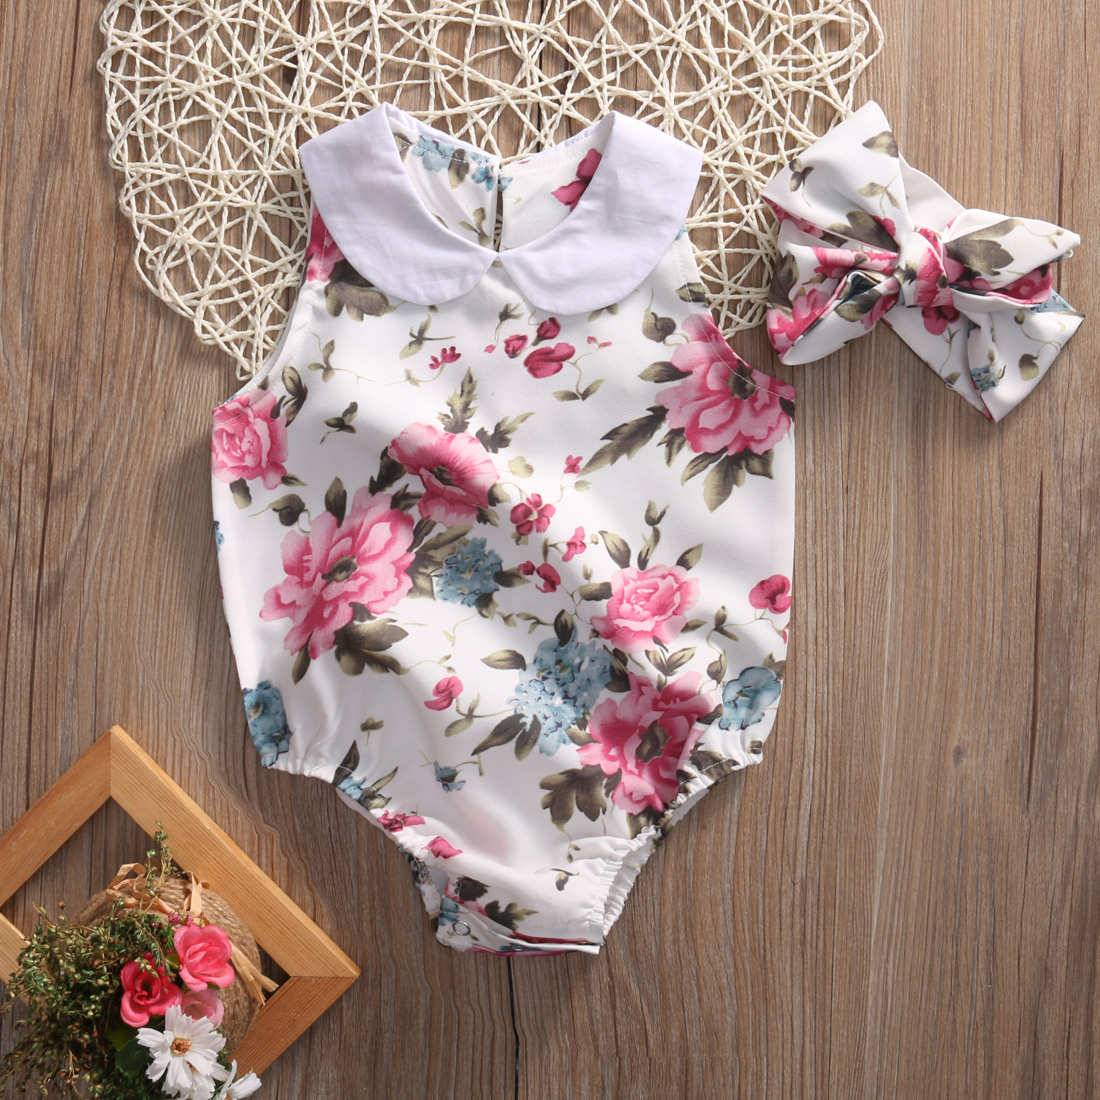 Newborn Infant Outfits Us 4 3 10 Off 2pcs Summer Floral Newborn Infant Baby Girl Clothes Sleevleess Flower Romper Jumpsuit Headband Baby Outfits Sunsuit Clothes In